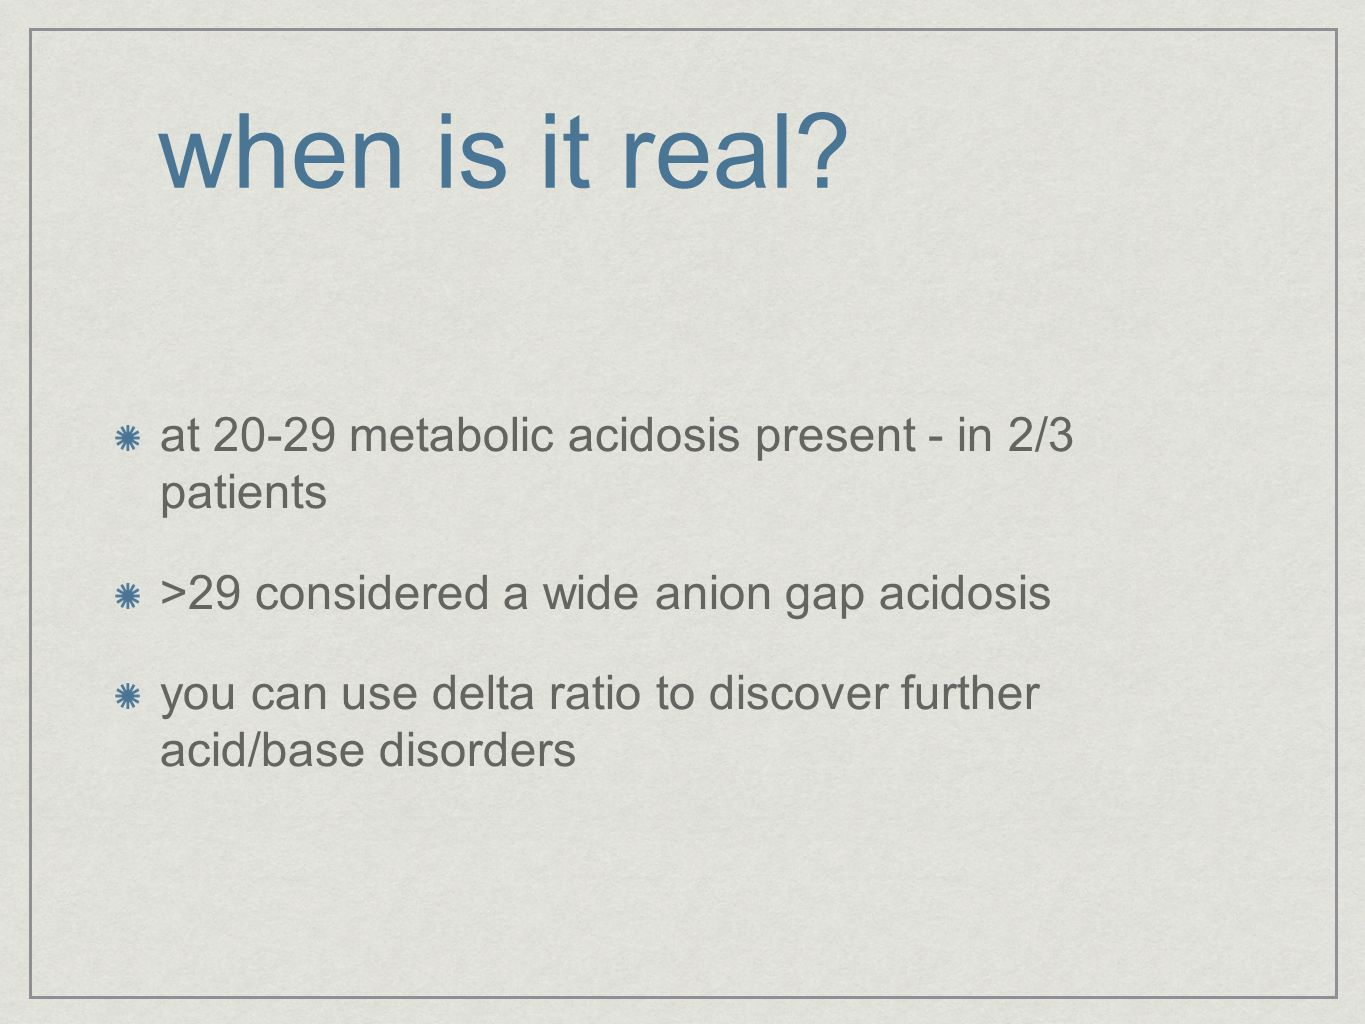 when is it real at 20-29 metabolic acidosis present - in 2/3 patients